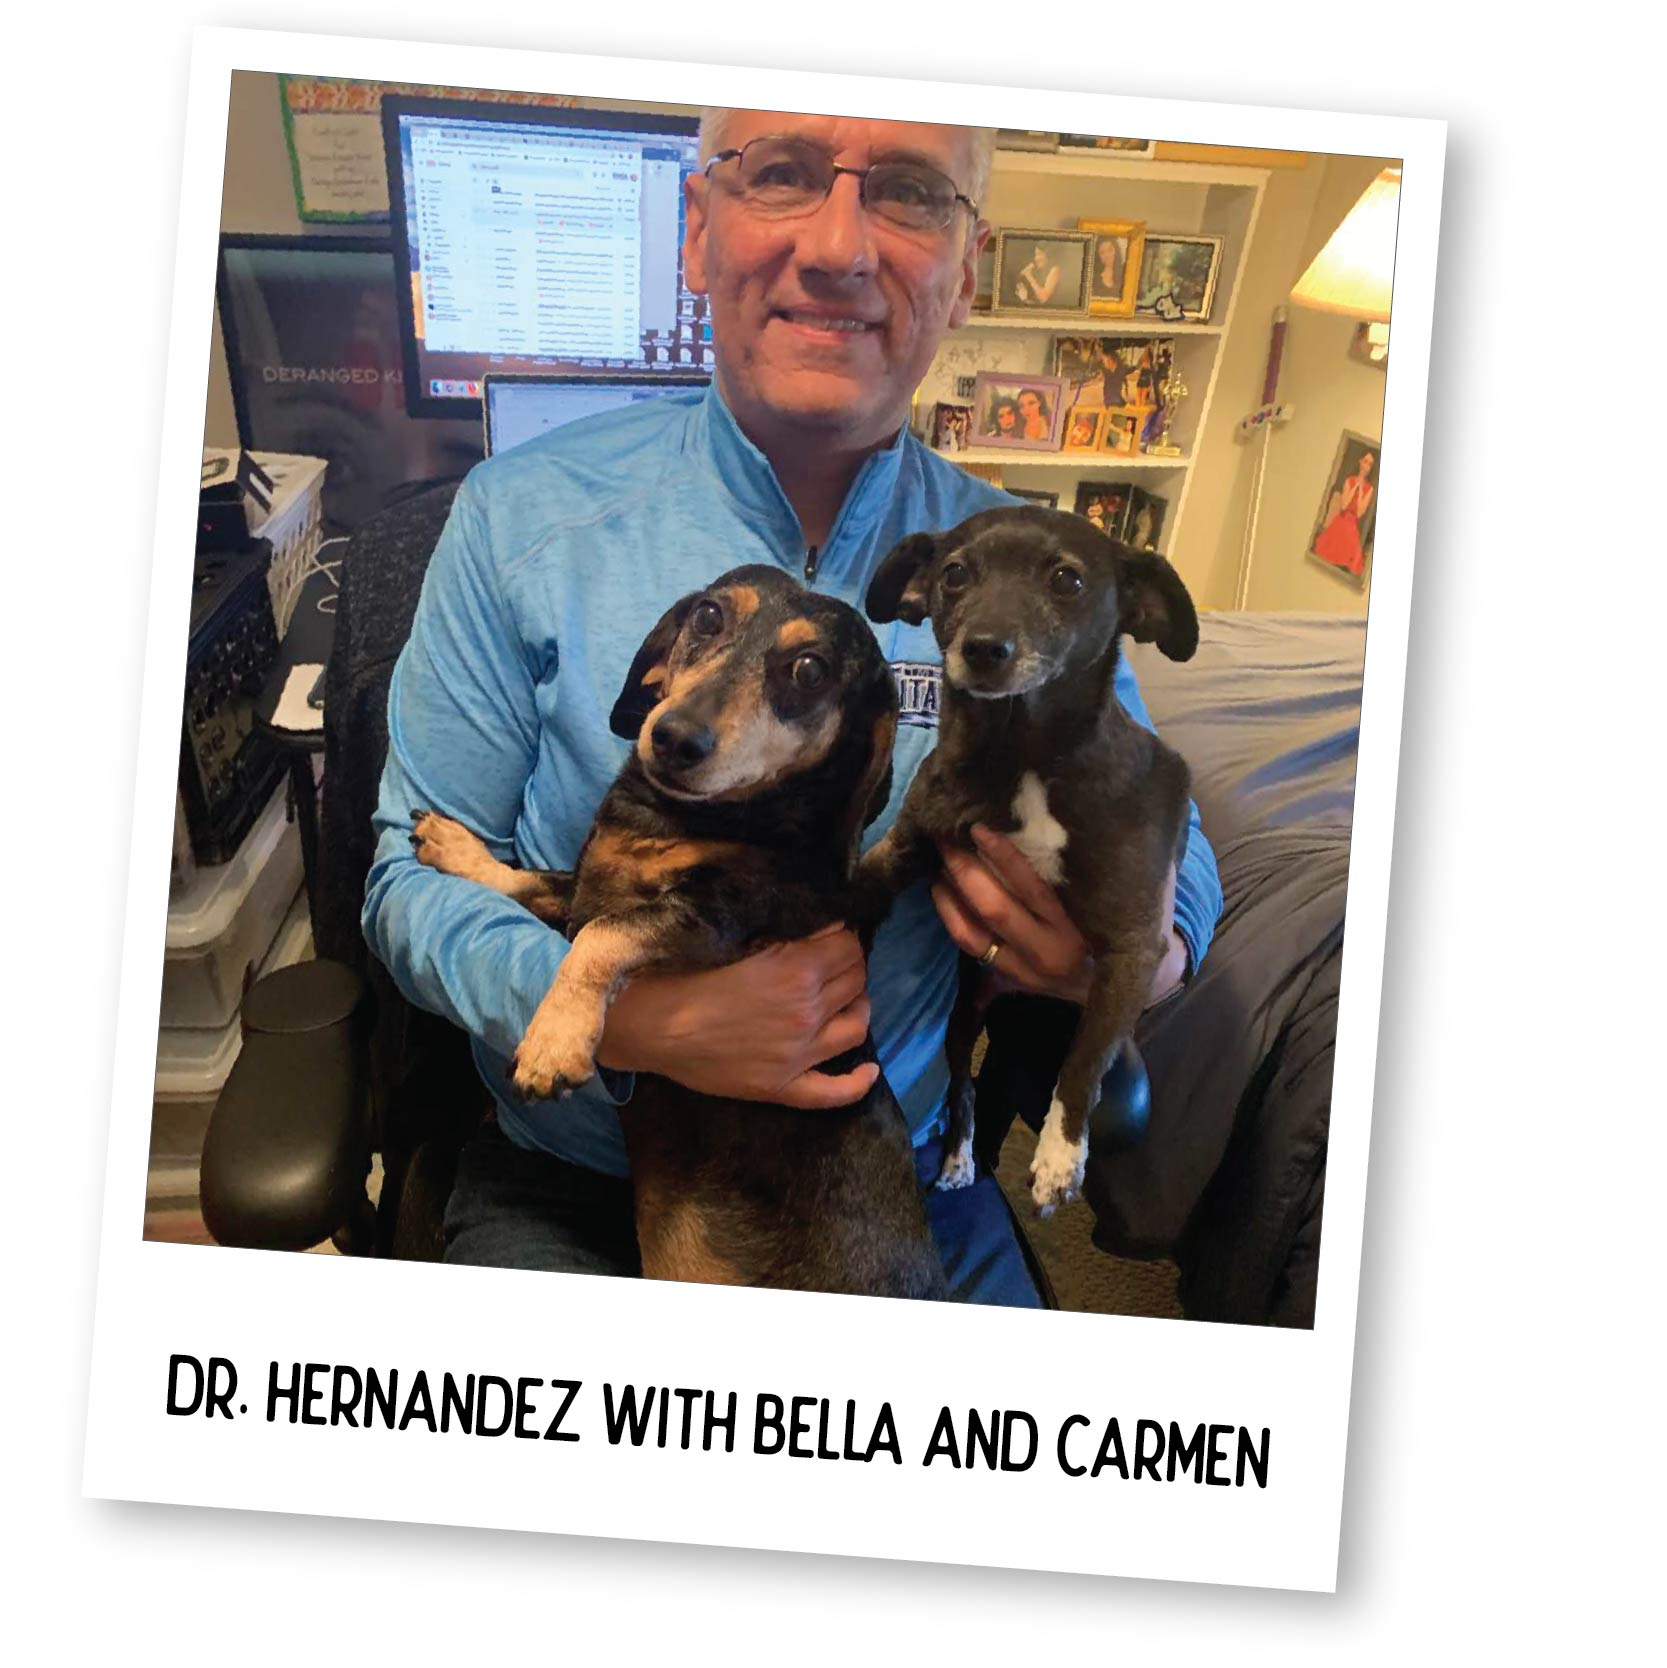 Dr. Hernandez with Bella and Carmen